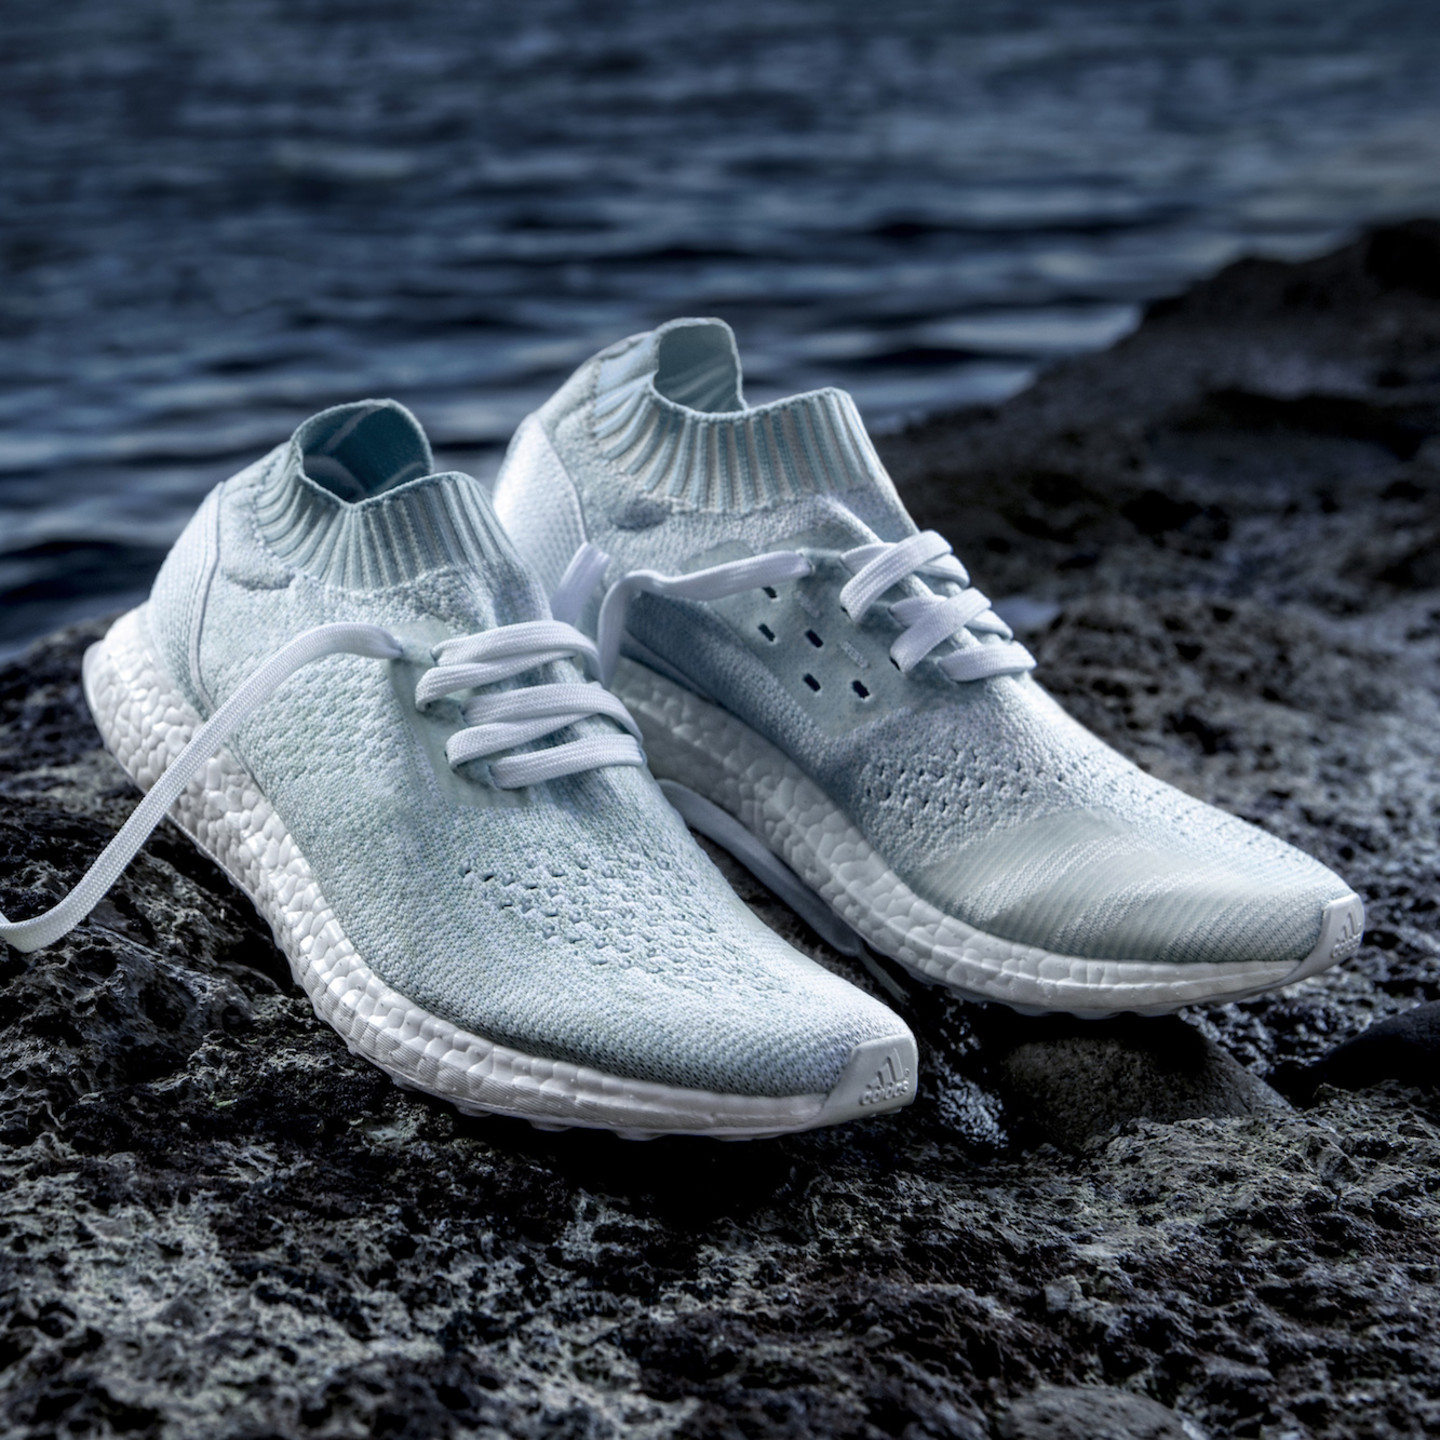 Adidas Ultra Boost Uncaged - Parley Oceans Ftwr White / Ice Blue CP9686